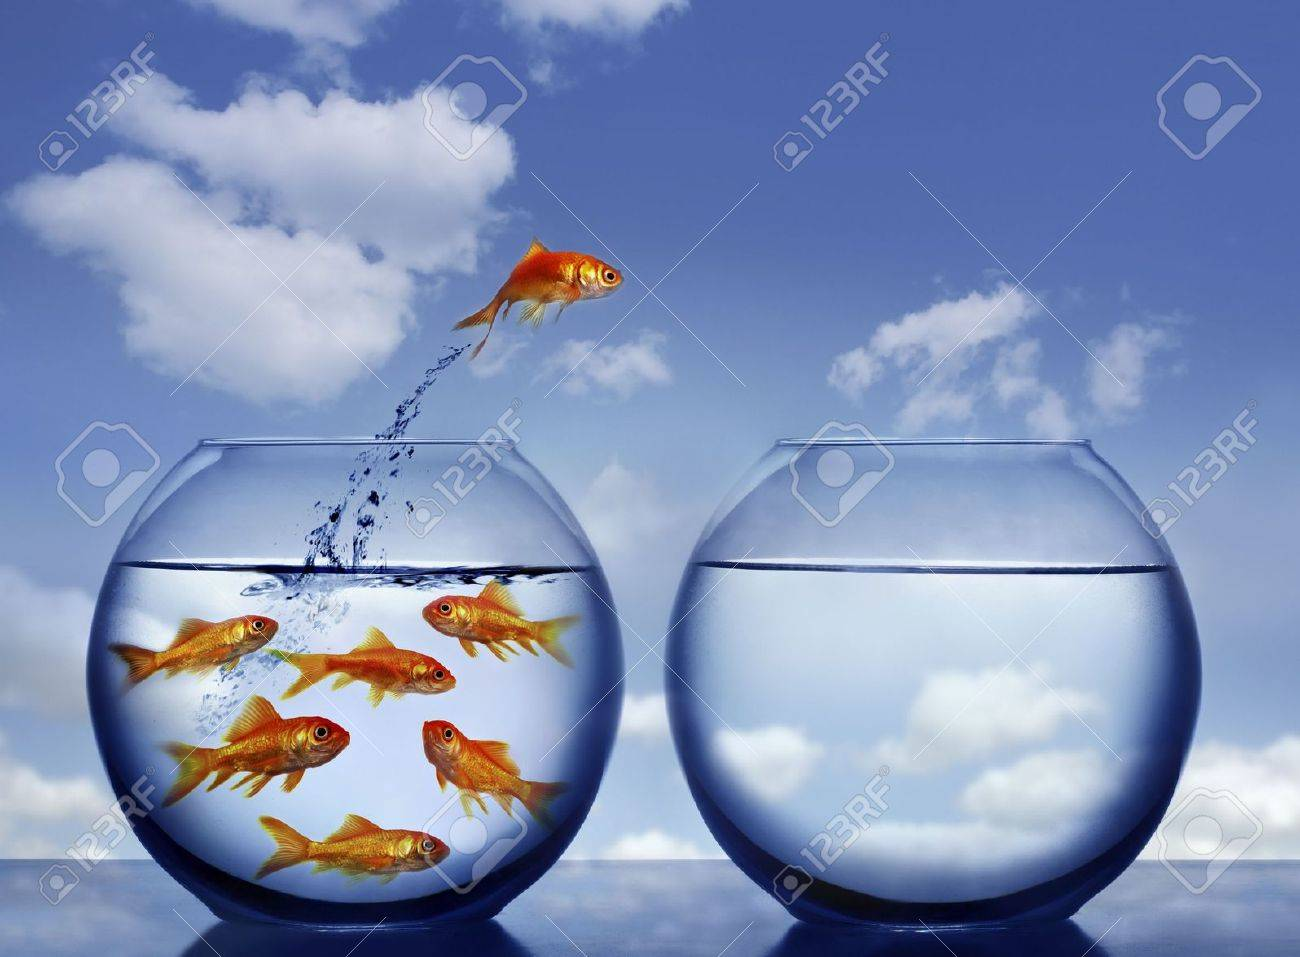 goldfish jumping out of the water from a  crowded bowl Stock Photo - 3764086